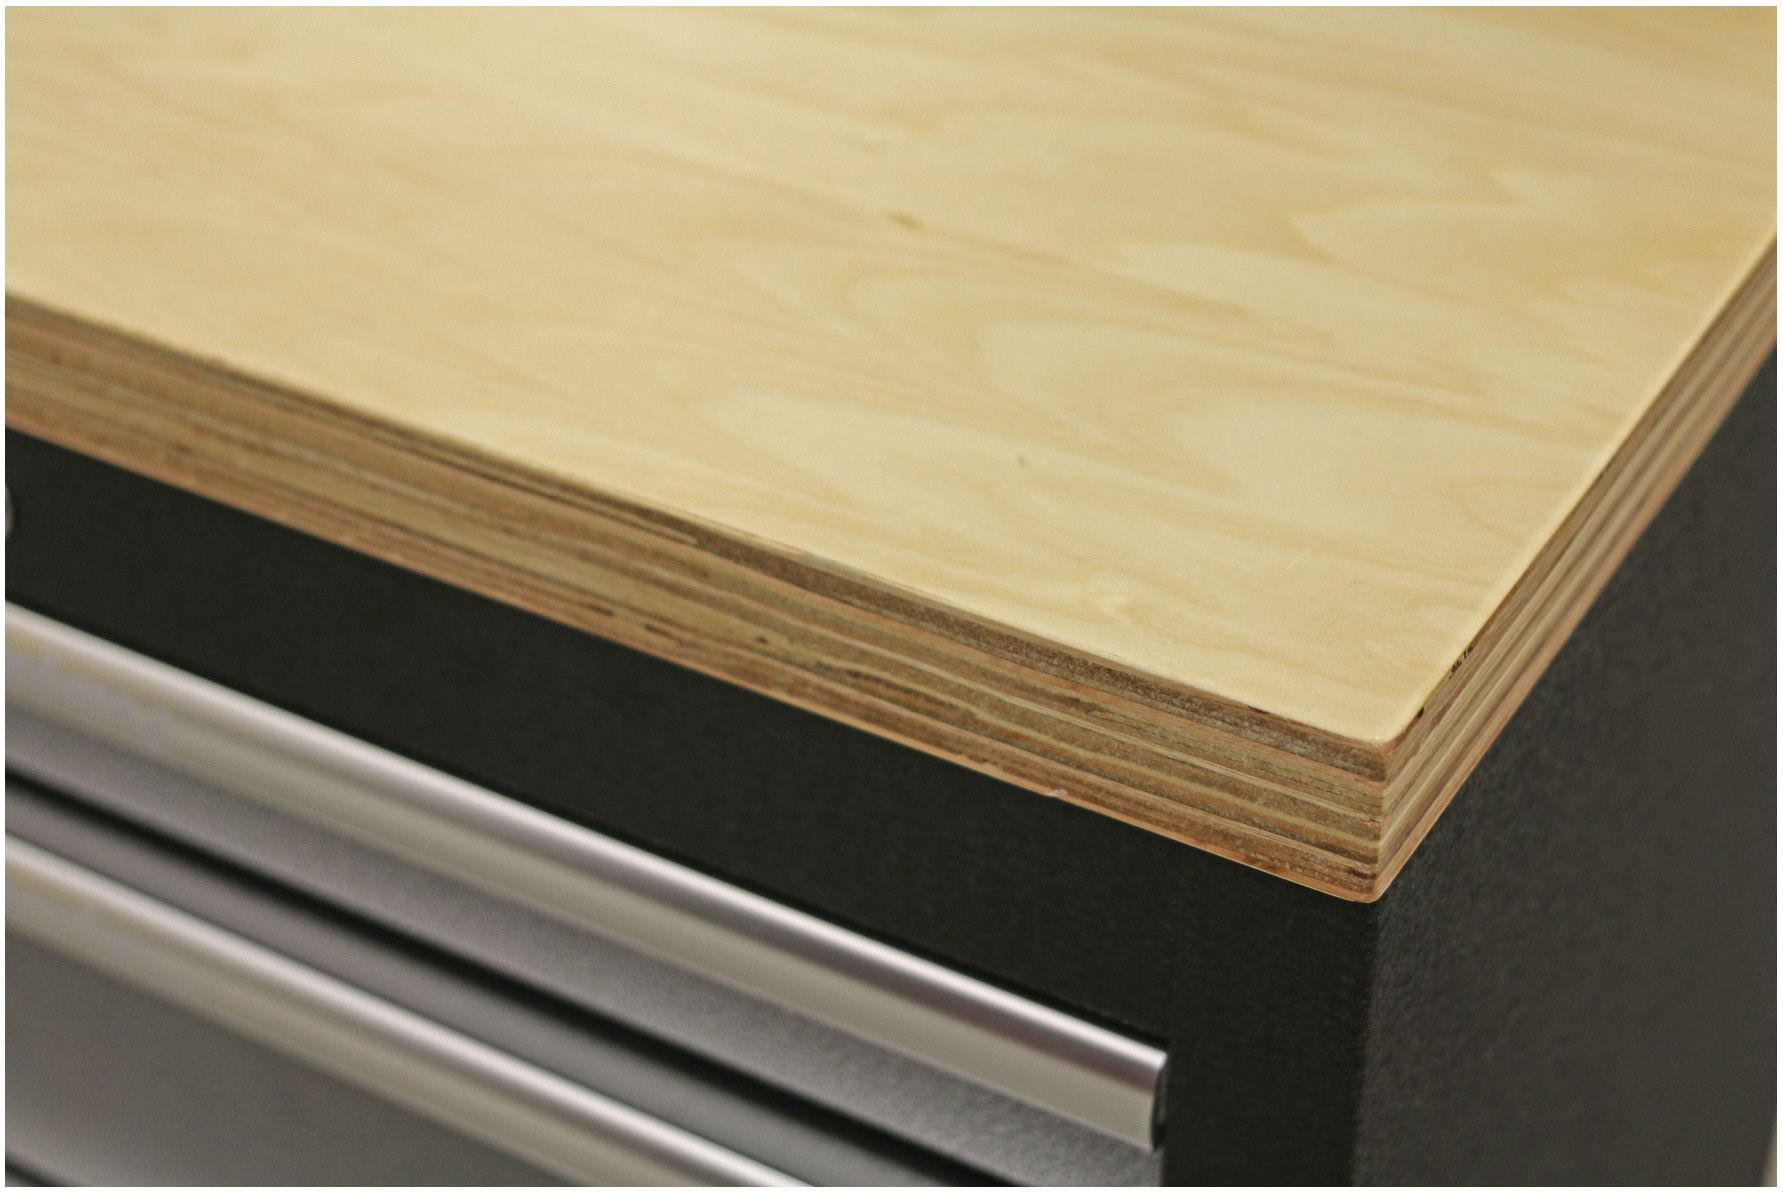 Sealey Superline Pro Pressed Wood Worktop 1360mm